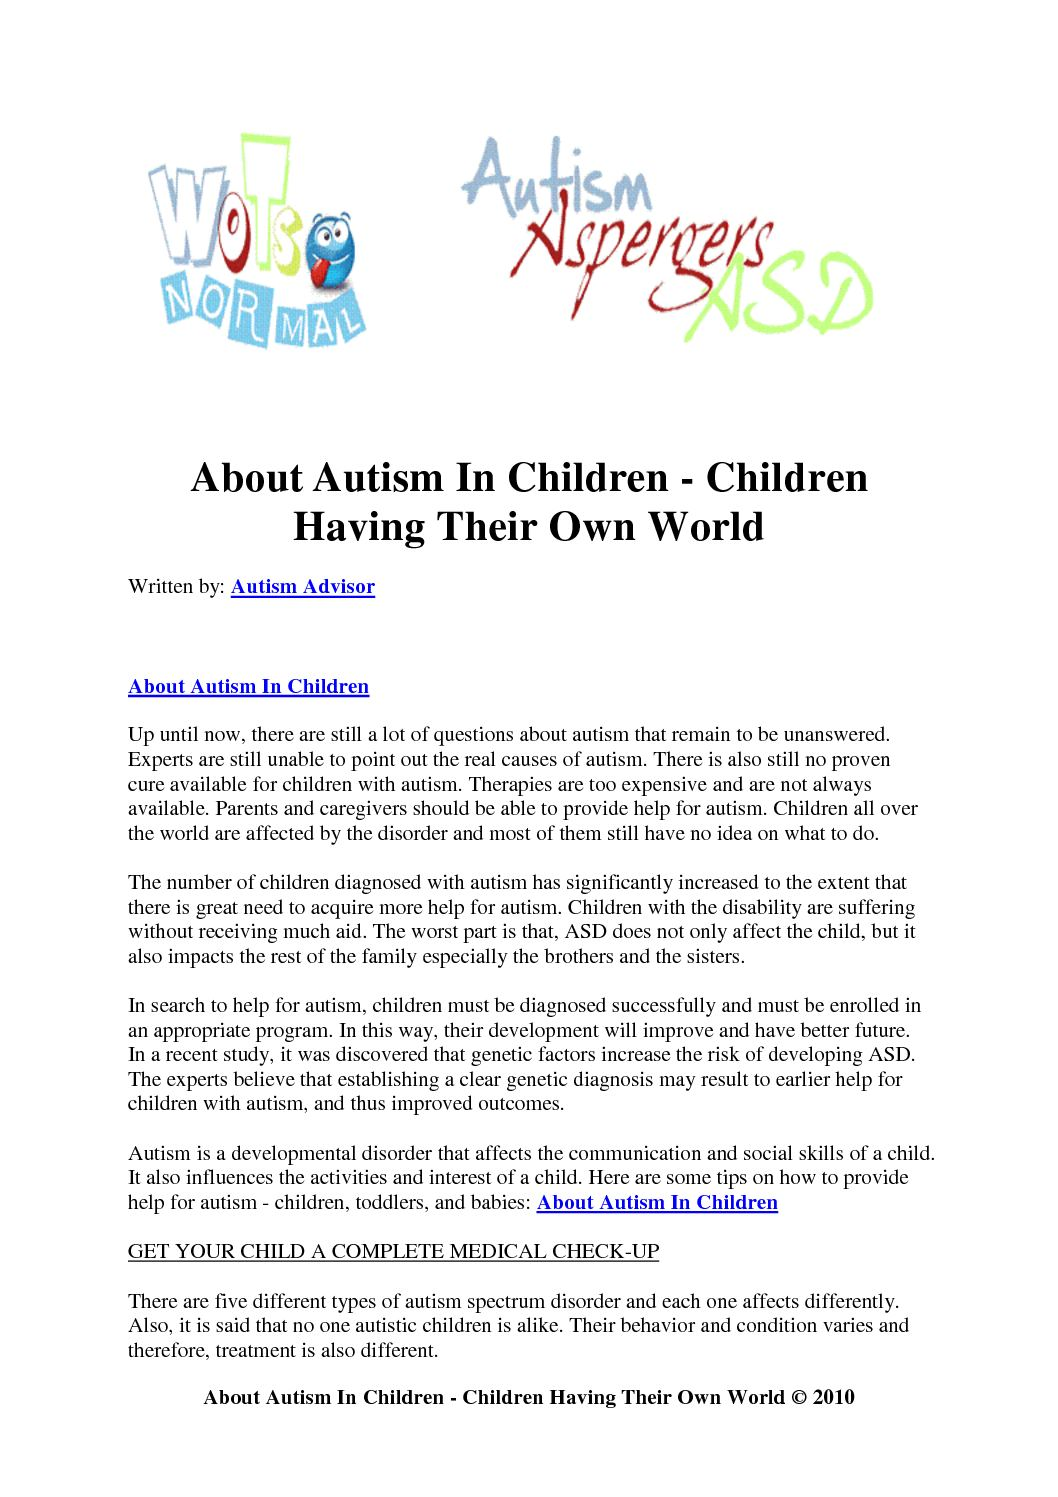 Why No One Needs Diagnosis Of Social >> Calameo About Autism In Children Children Having Their Own World